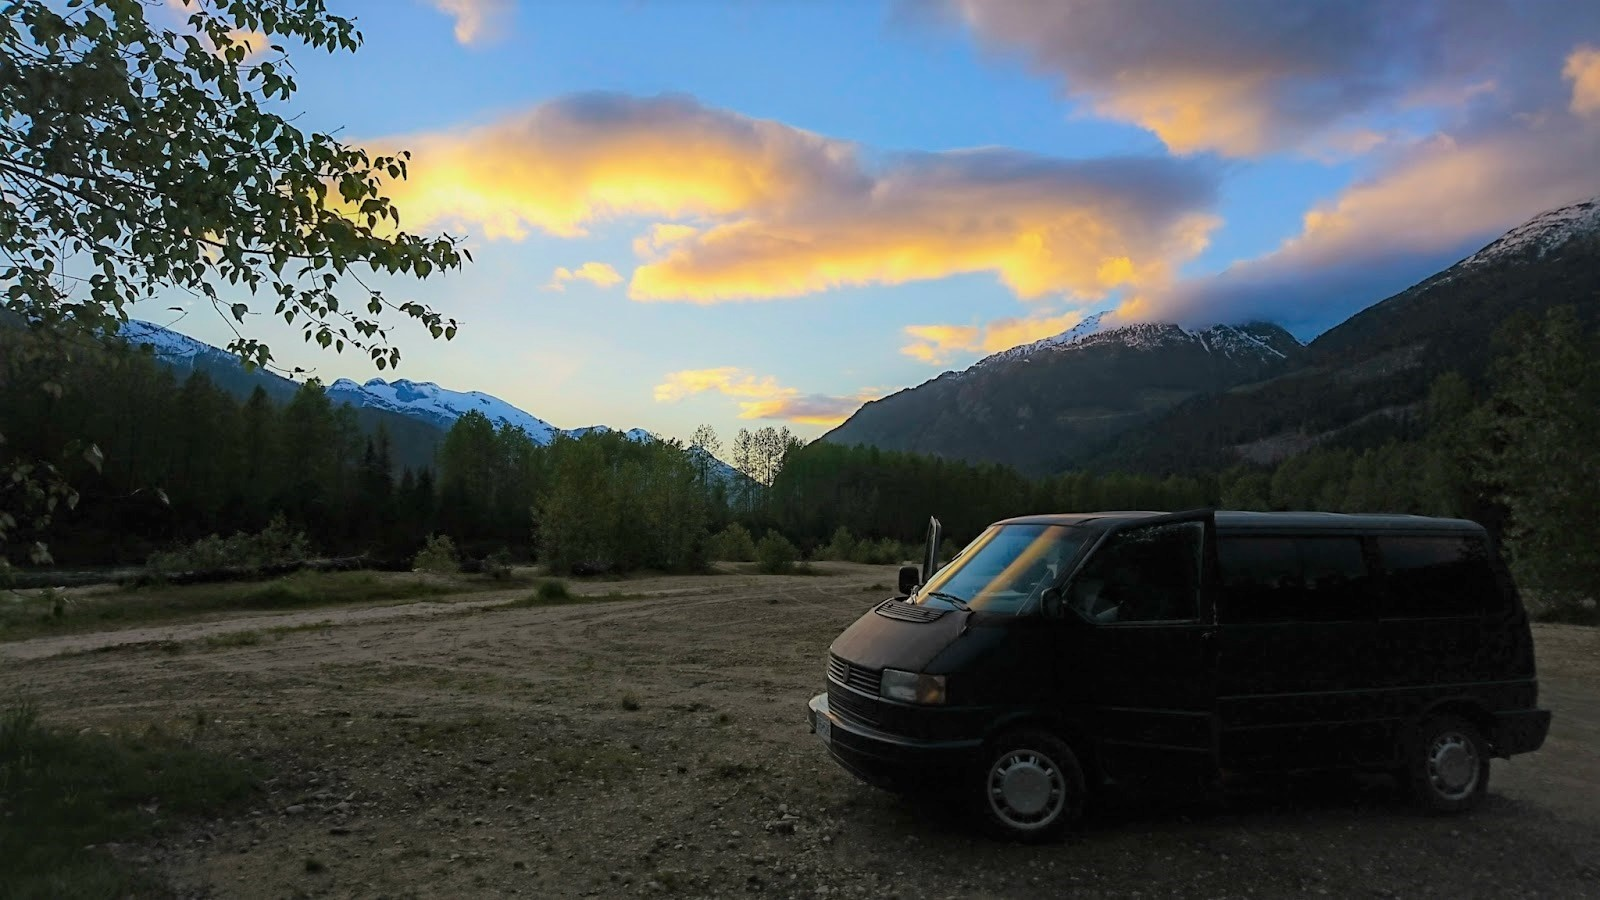 Eurovan parked in the moutains at sunset